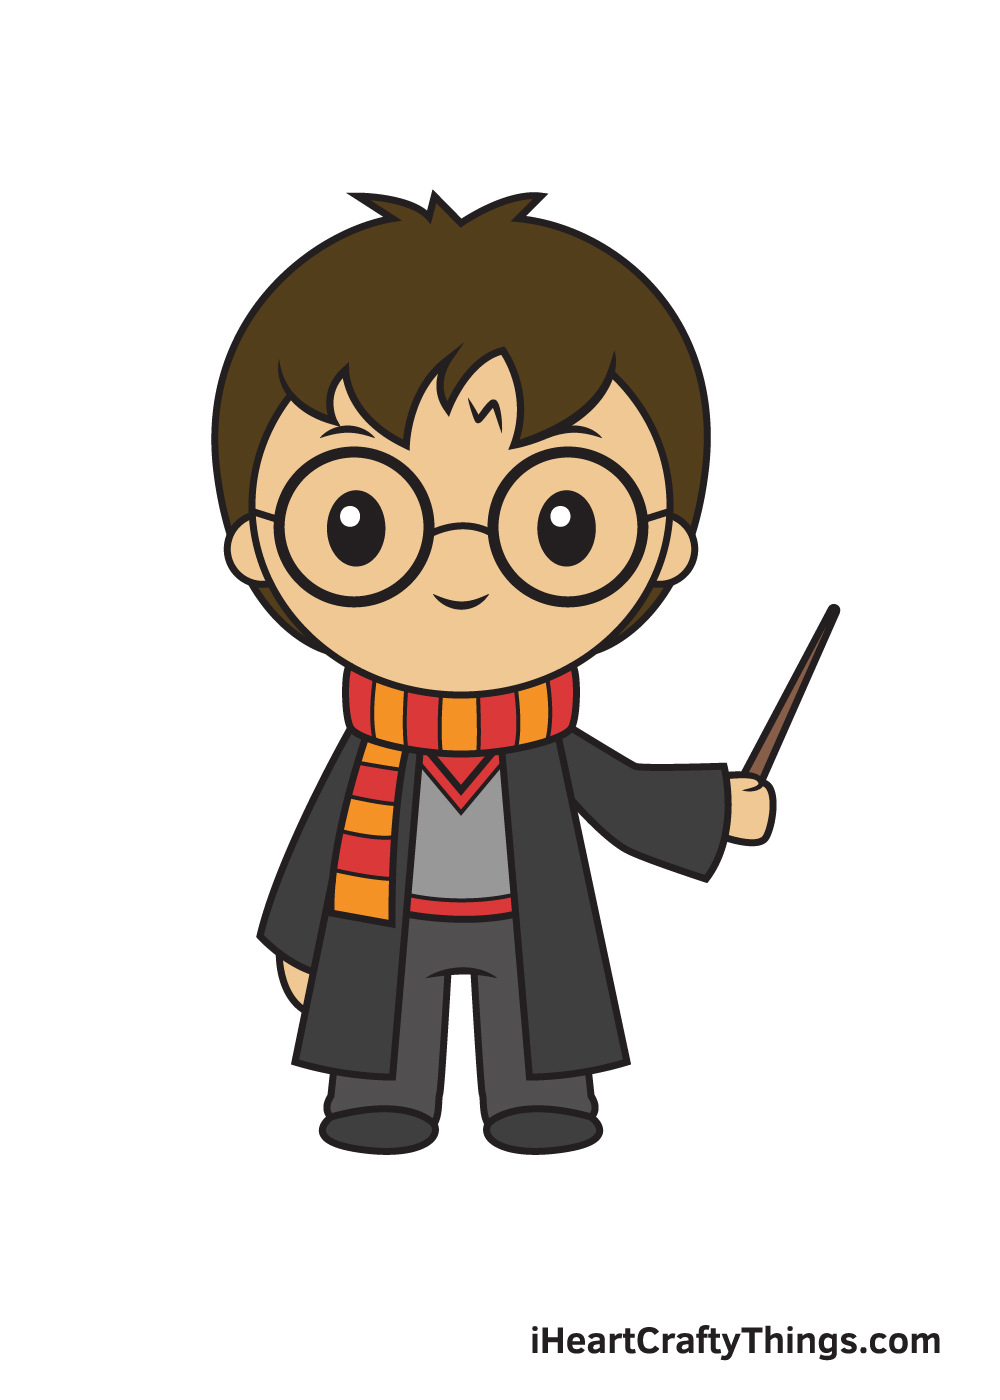 Harry Potter Drawing – 9 Steps